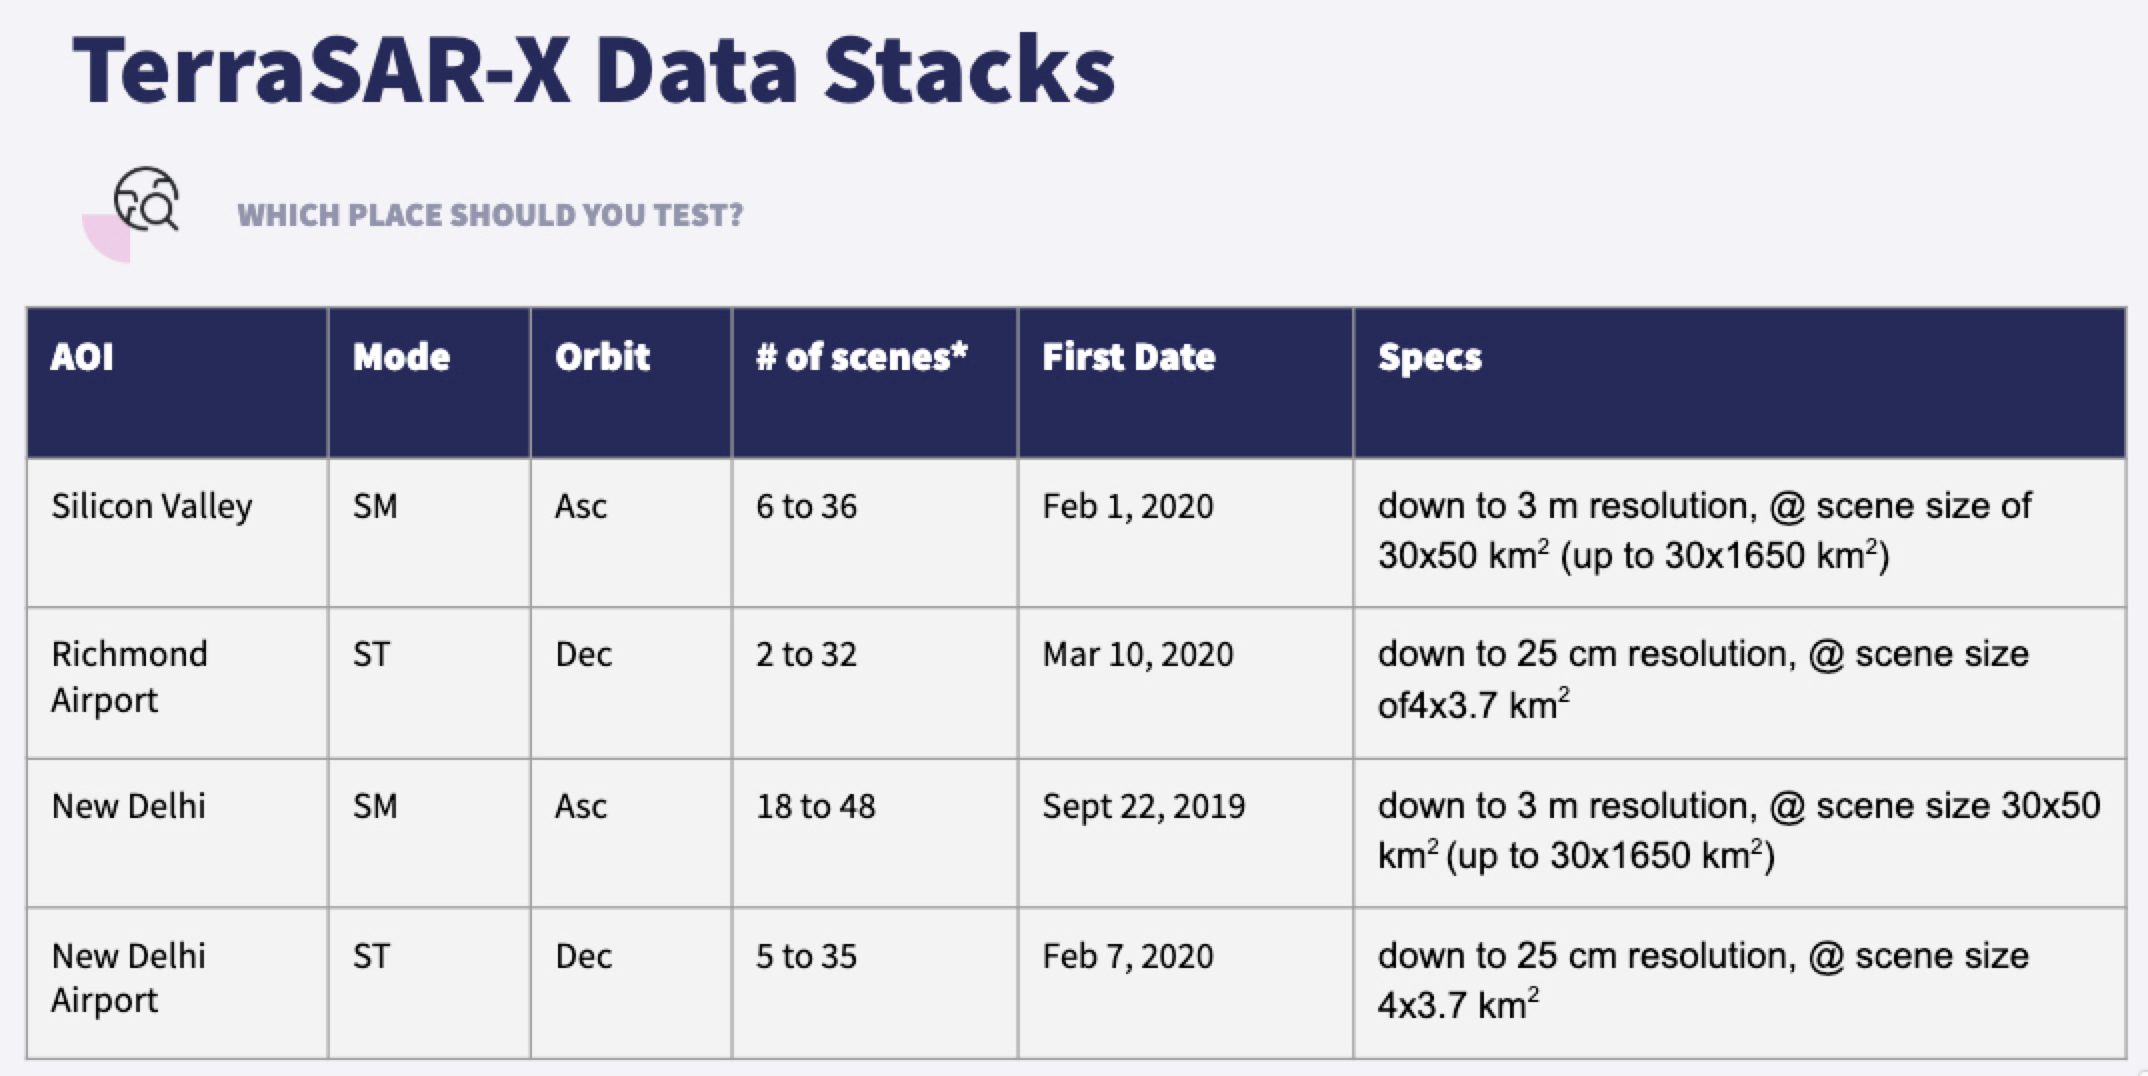 Table of Available TerraSAR-X Sample Data Stacks